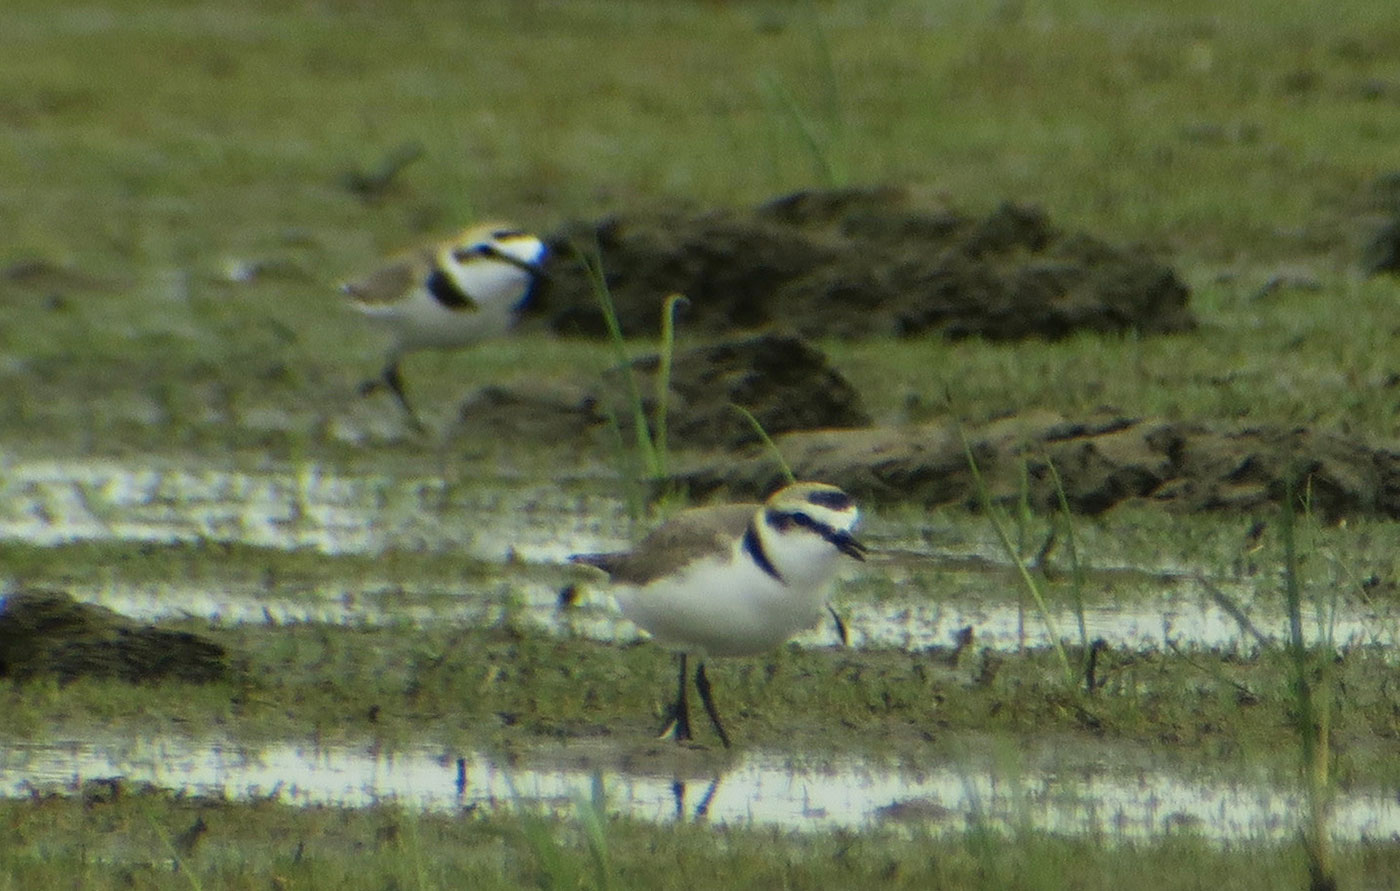 02_seeregenpfeifer_kentish-plover_sandeck_2019-05-23_0707